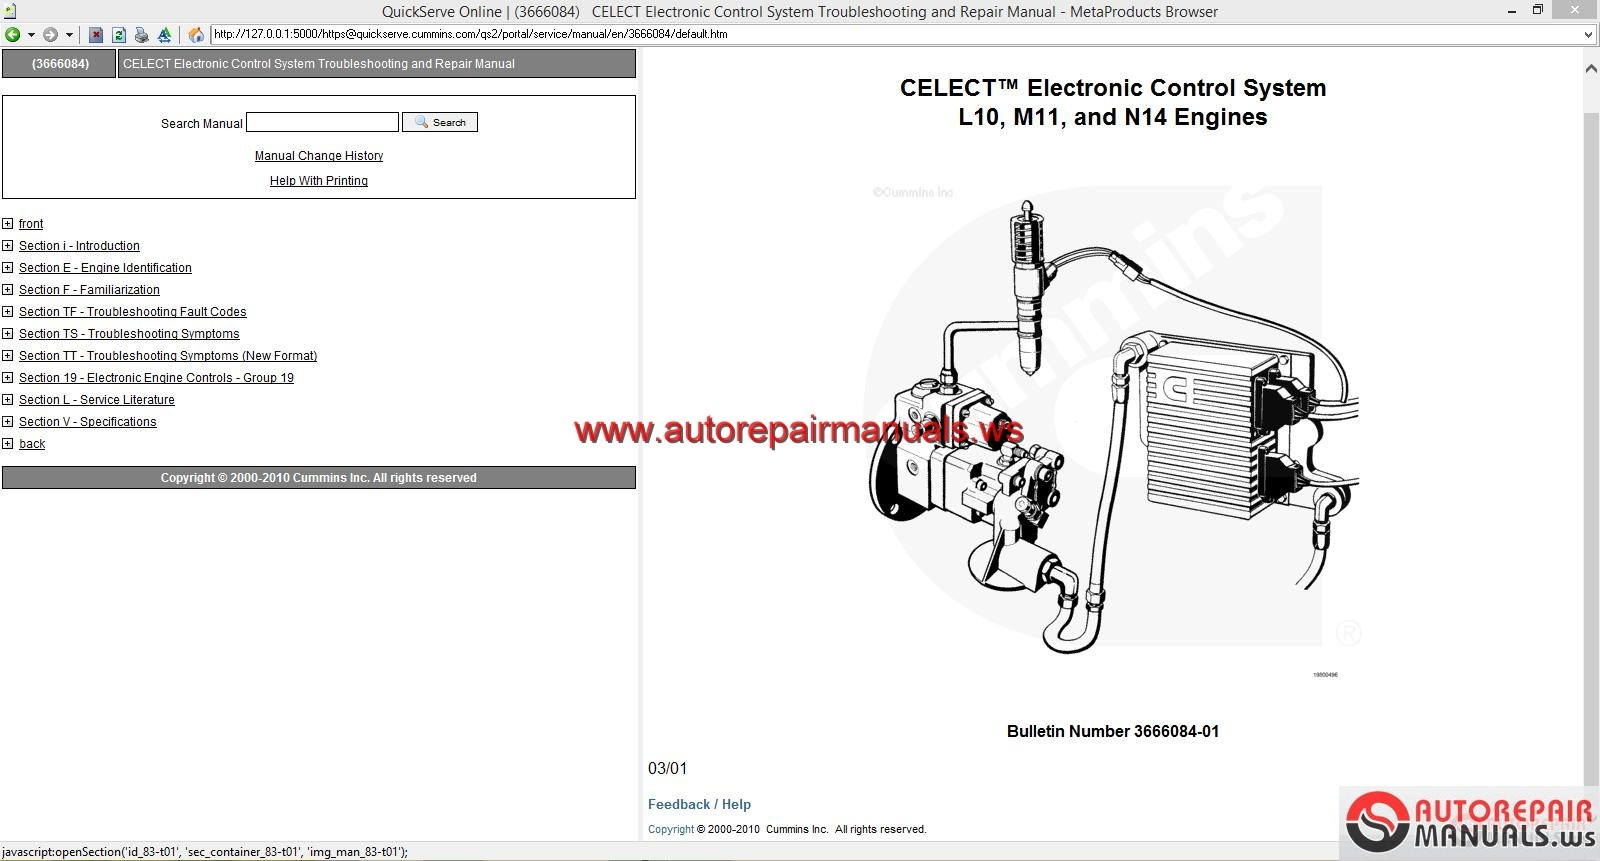 keygen autorepairmanuals ws  cummins celect electronic